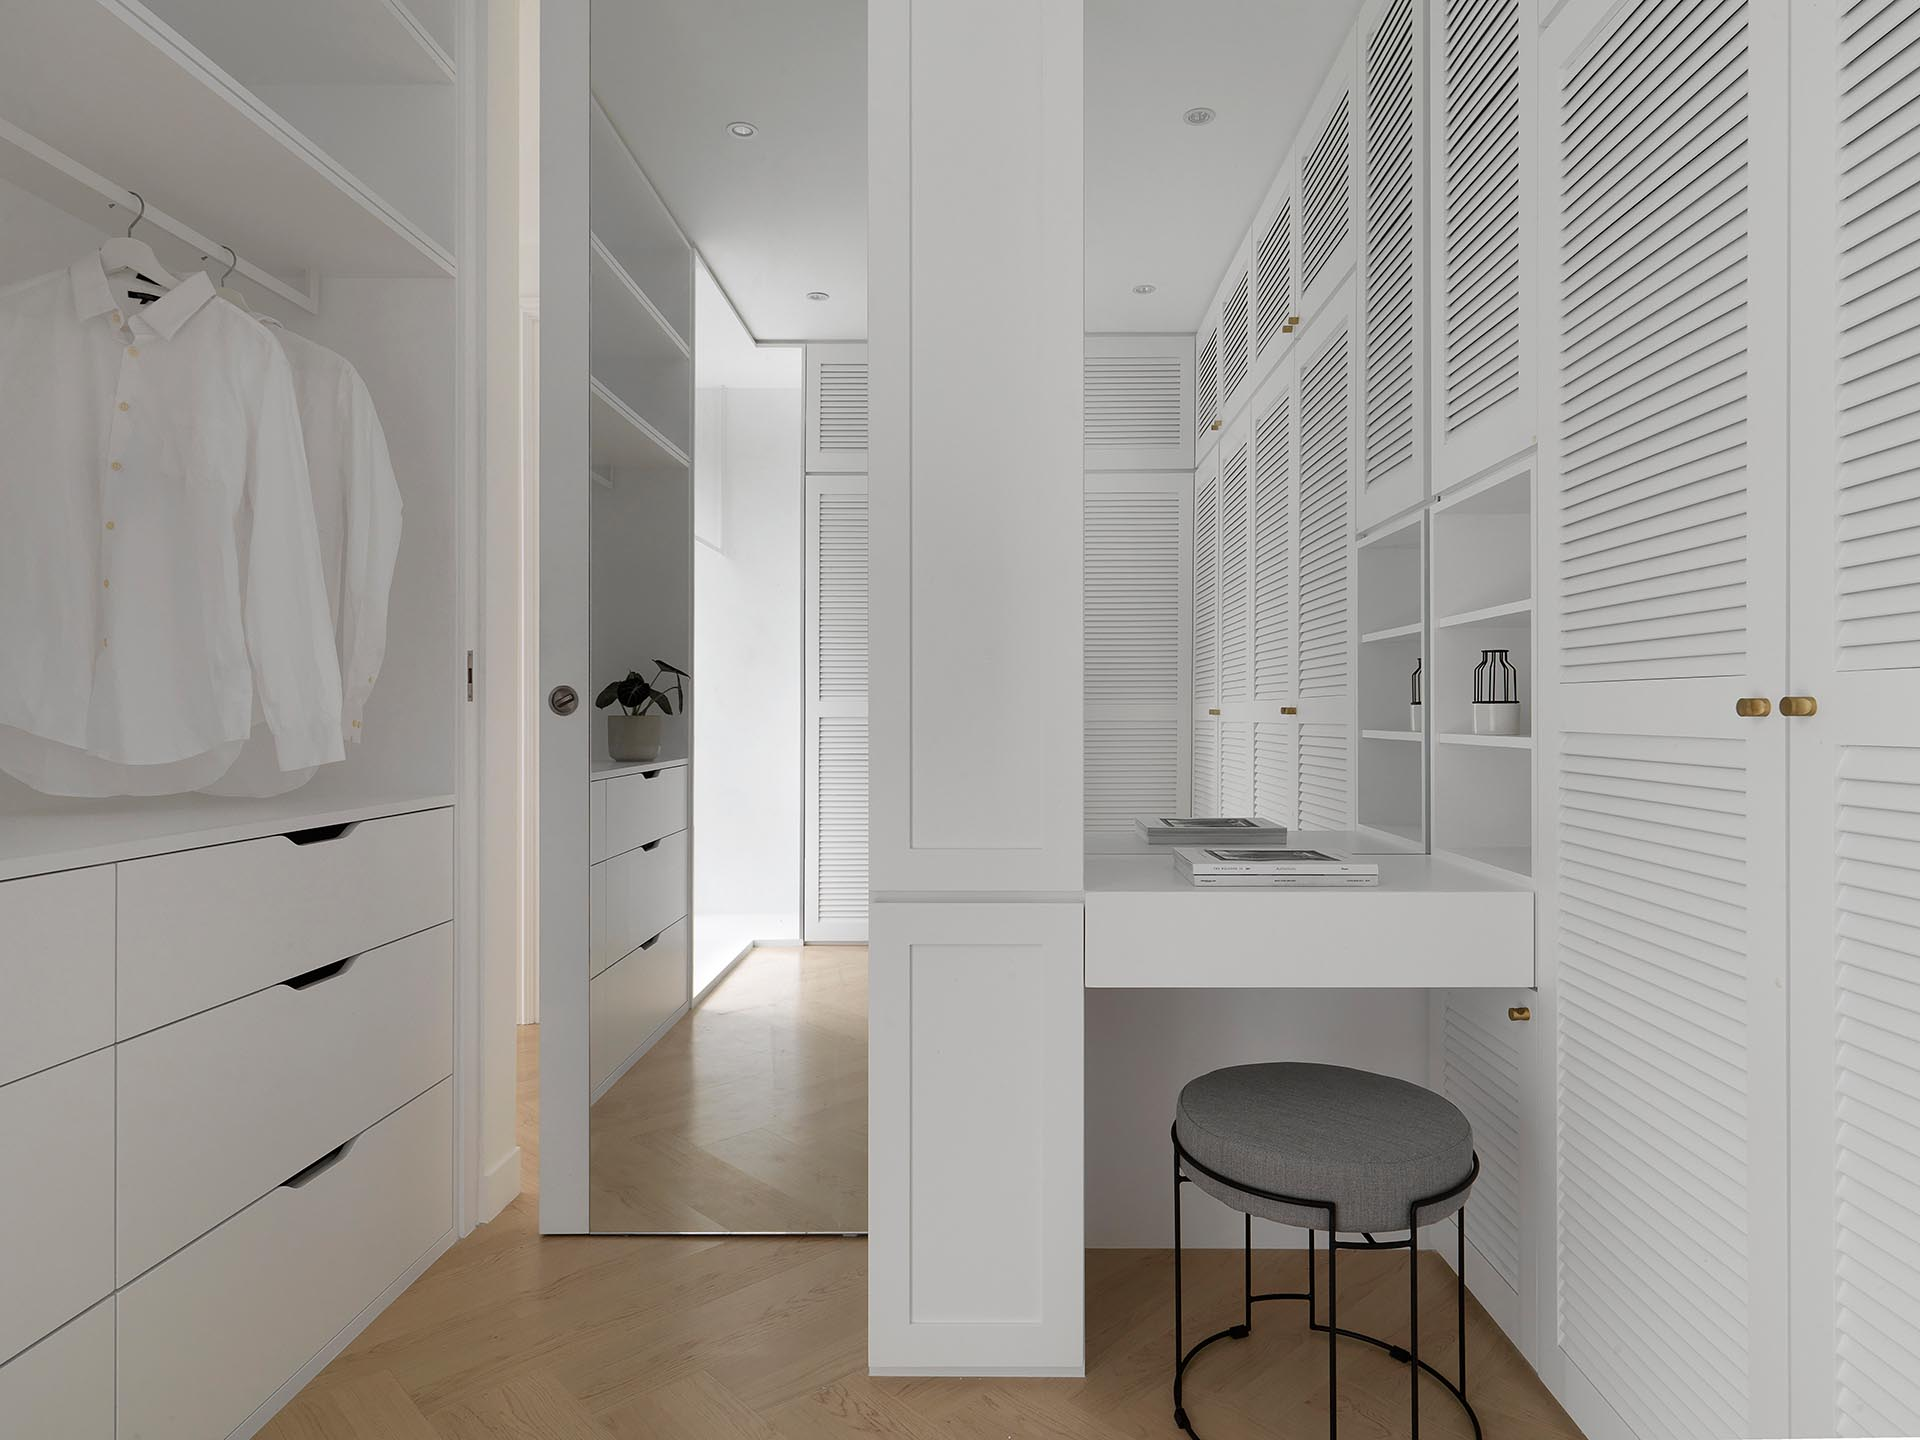 A modern walk-in closet designed with white cabinets, a small vanity, and floor-to-ceiling mirror behind the door.